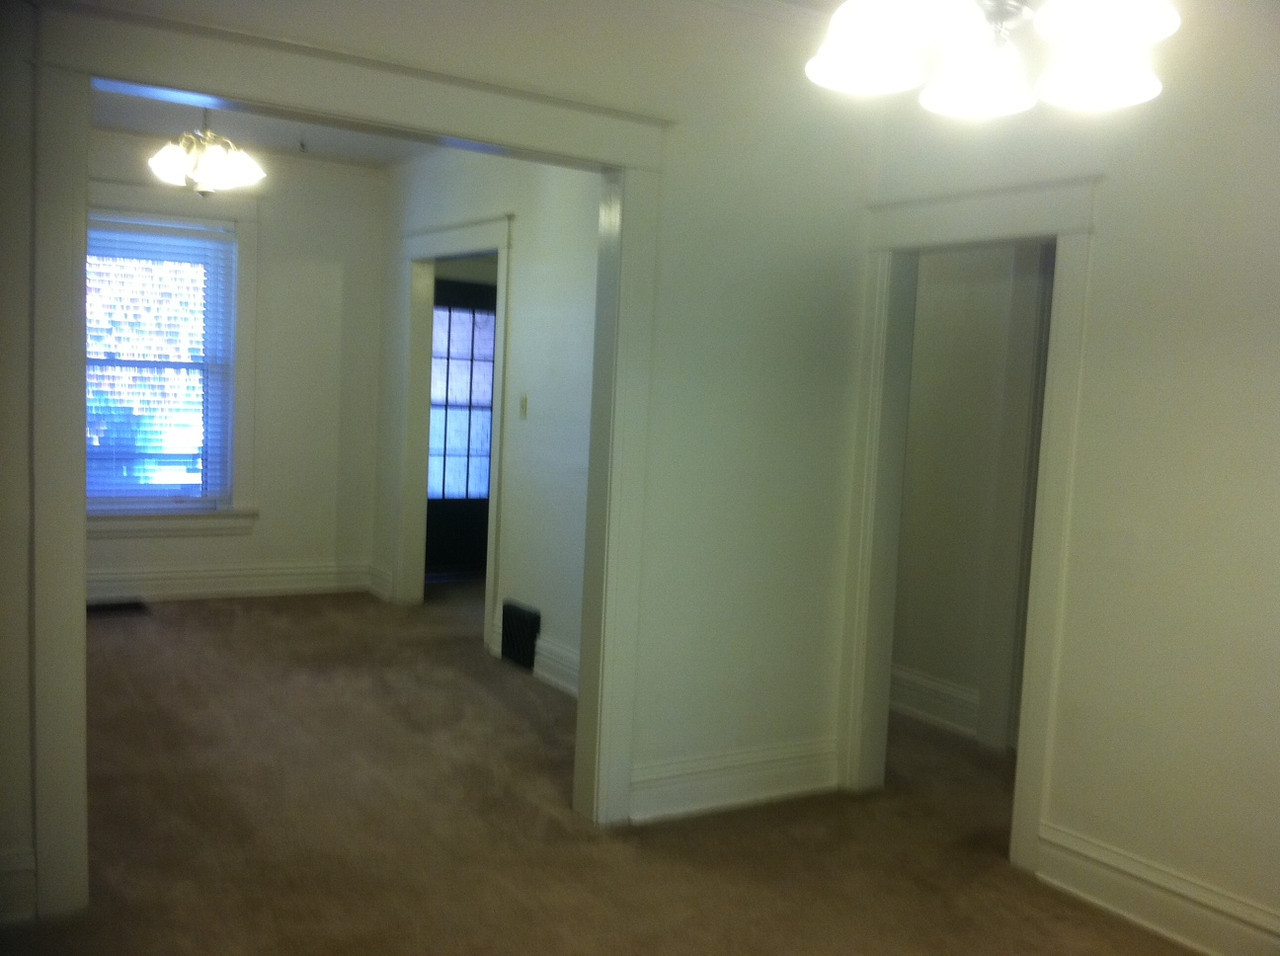 view of front room and hallway from dining room